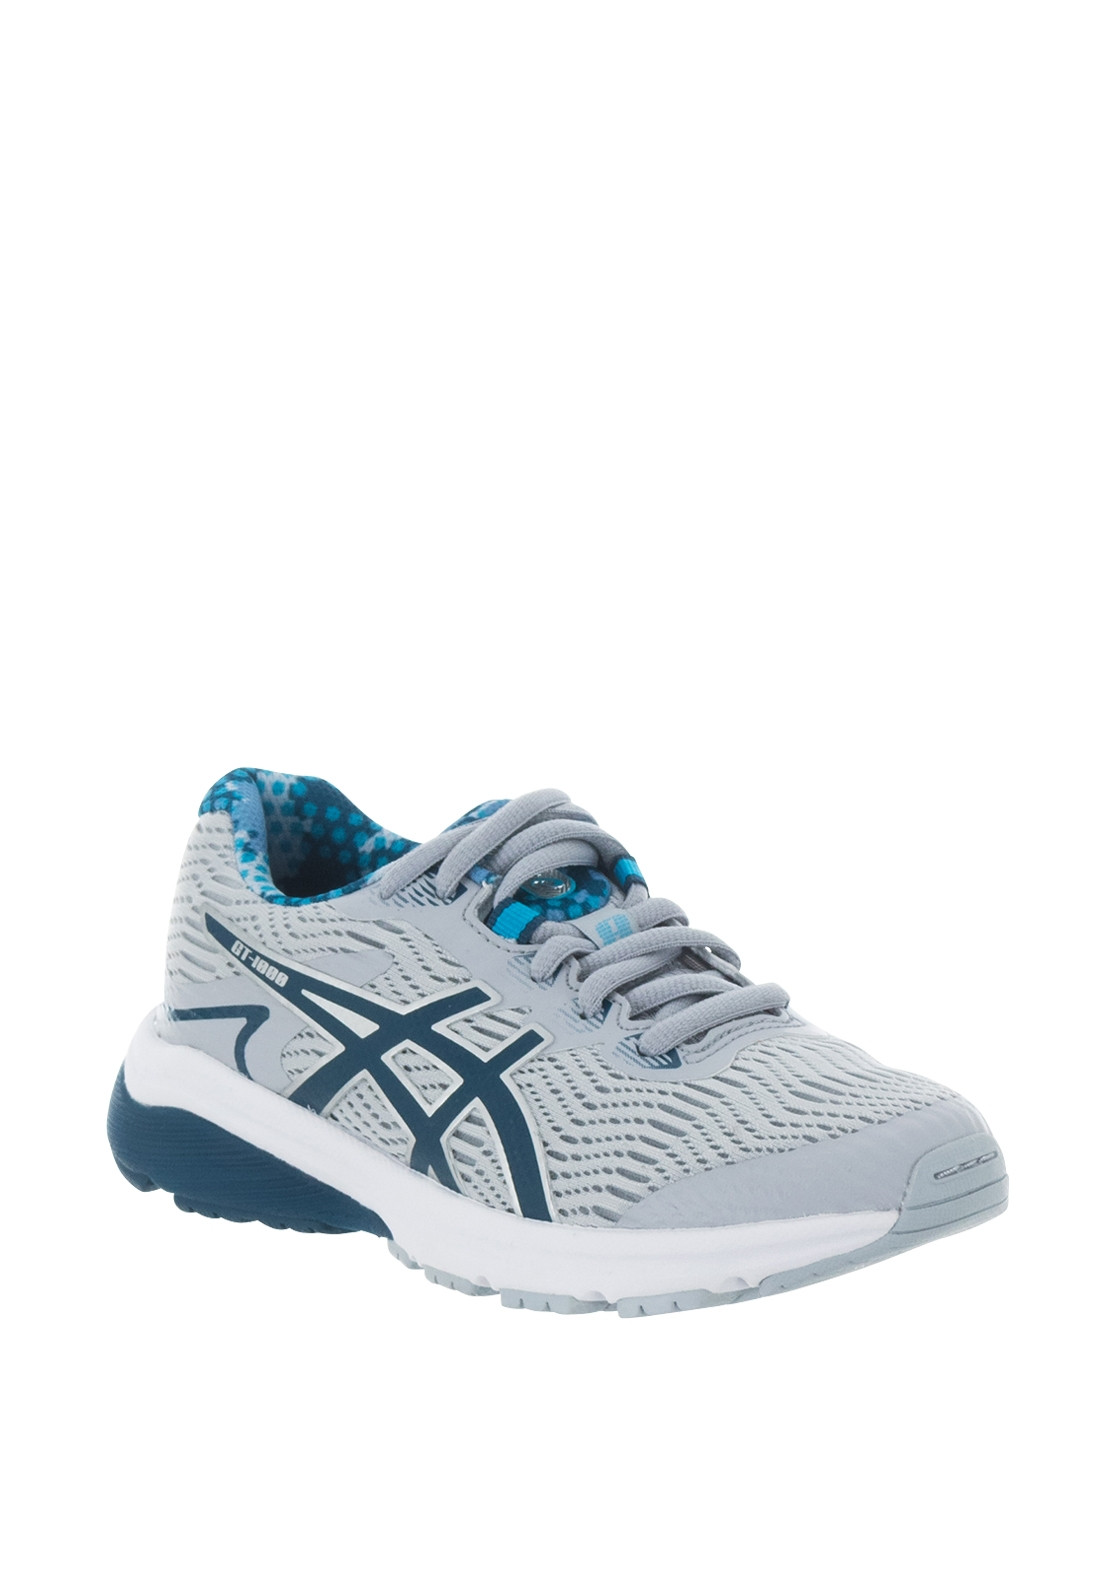 asics trainers boys Cheaper Than Retail Price> Buy Clothing ...